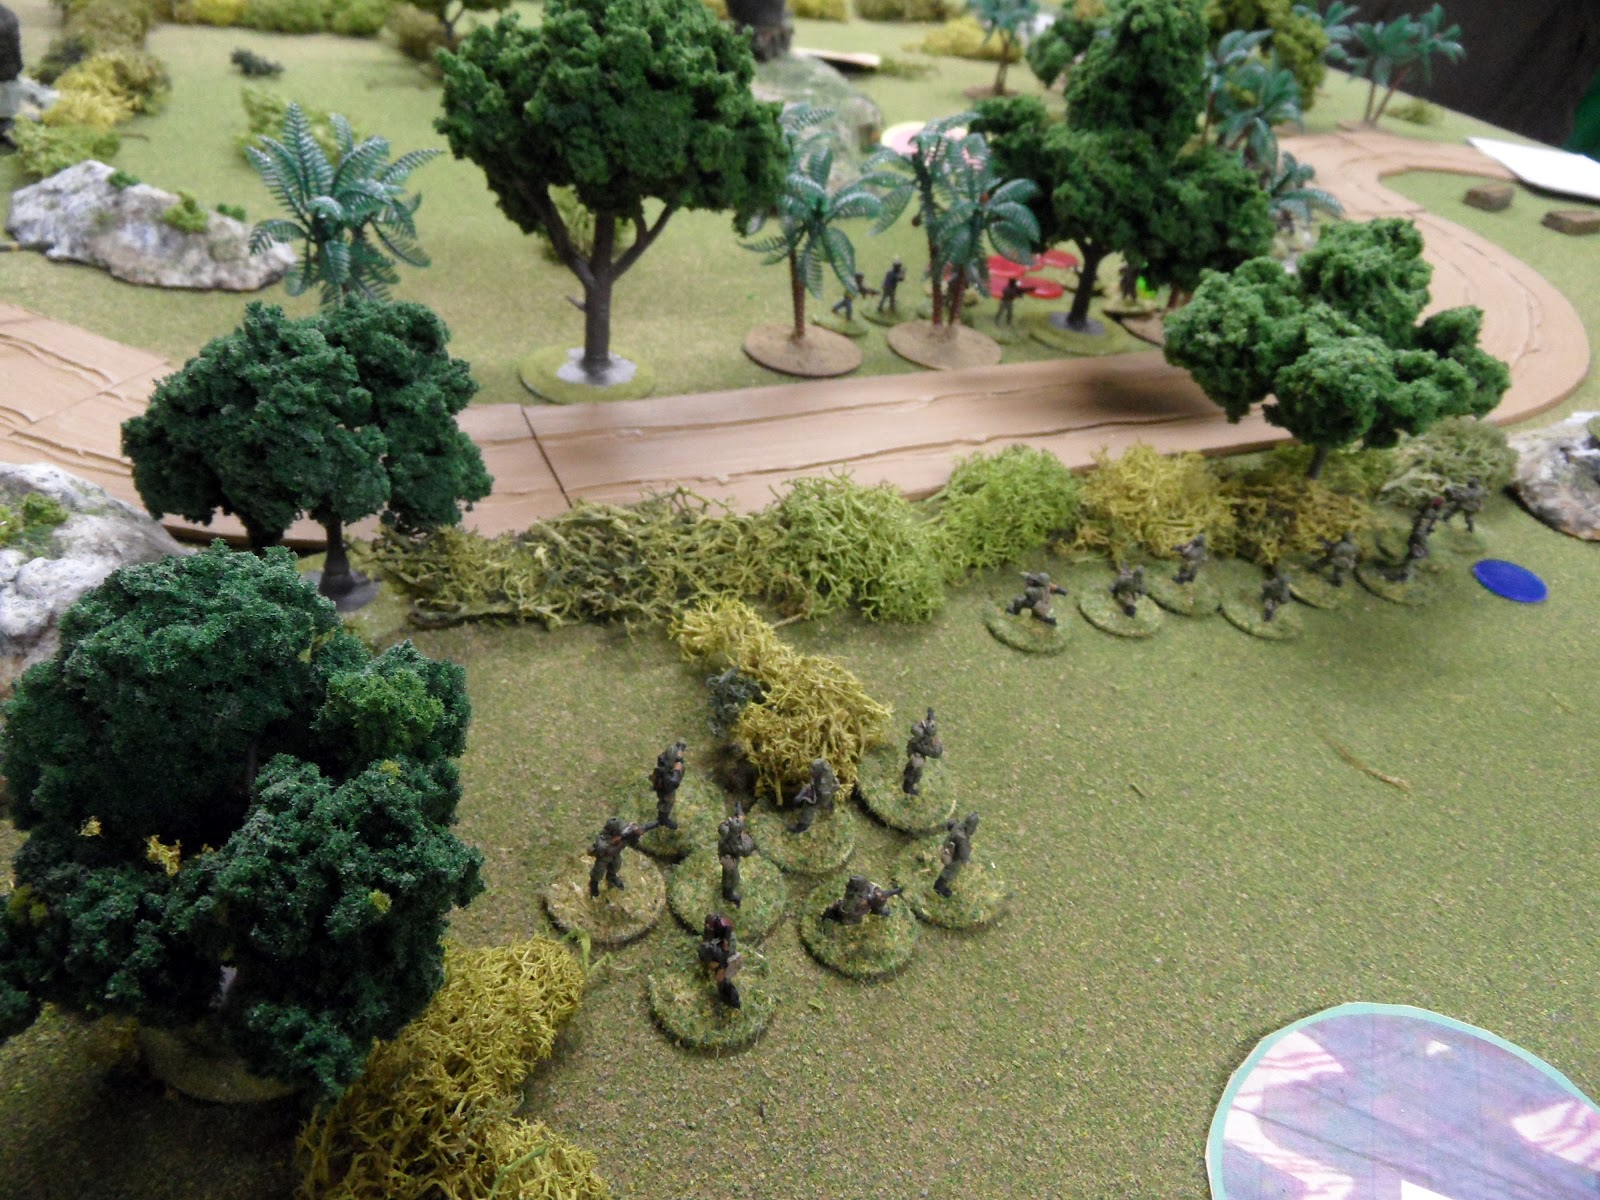 More Government forces advance to drive off the stubborn rebels in the tree line.